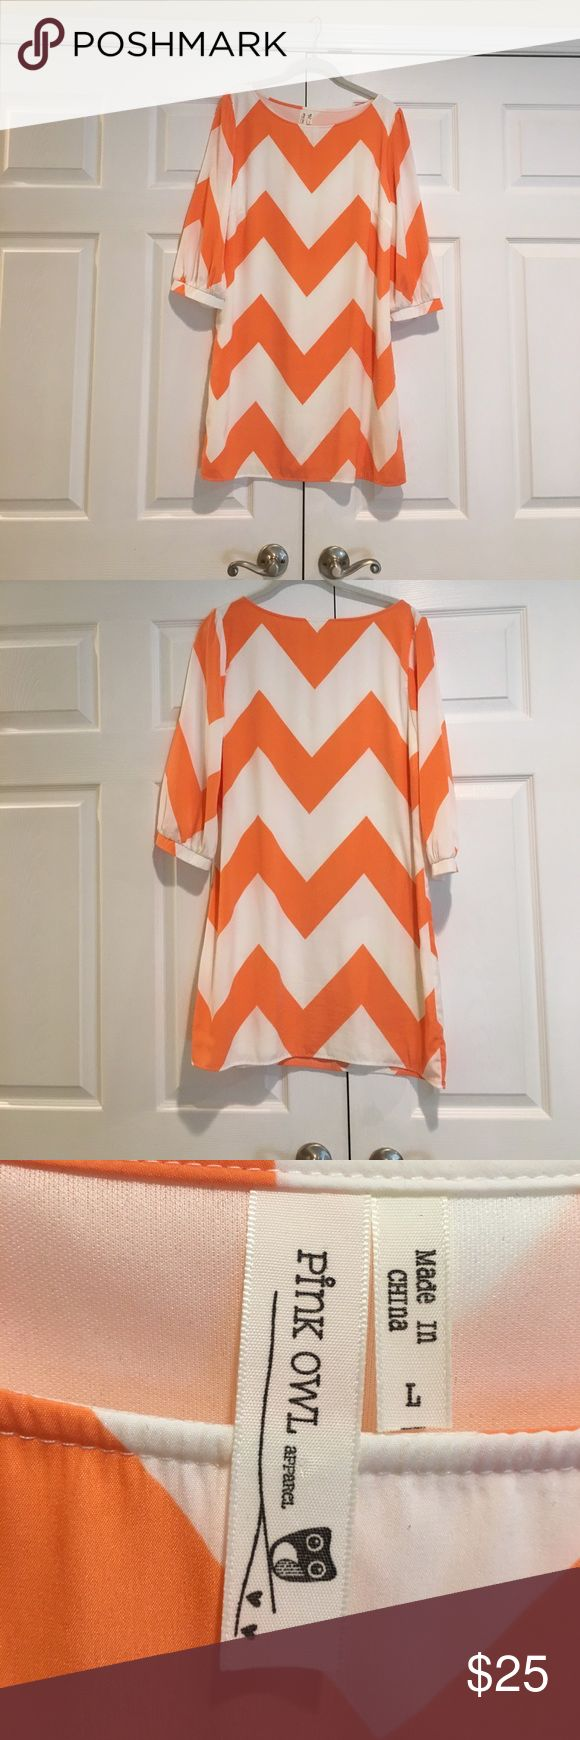 Cream and orange chevron dress Cream and orange chevron dress. EUC. Worn a handful of times. Polyester material with lining underneath. Hand wash. 33.5 inches in length. 18 inch sleeves. 16 inch bust. Runs small. Pink owl is the brand. Purchased at local boutique. Make an offer. No trades. Dresses